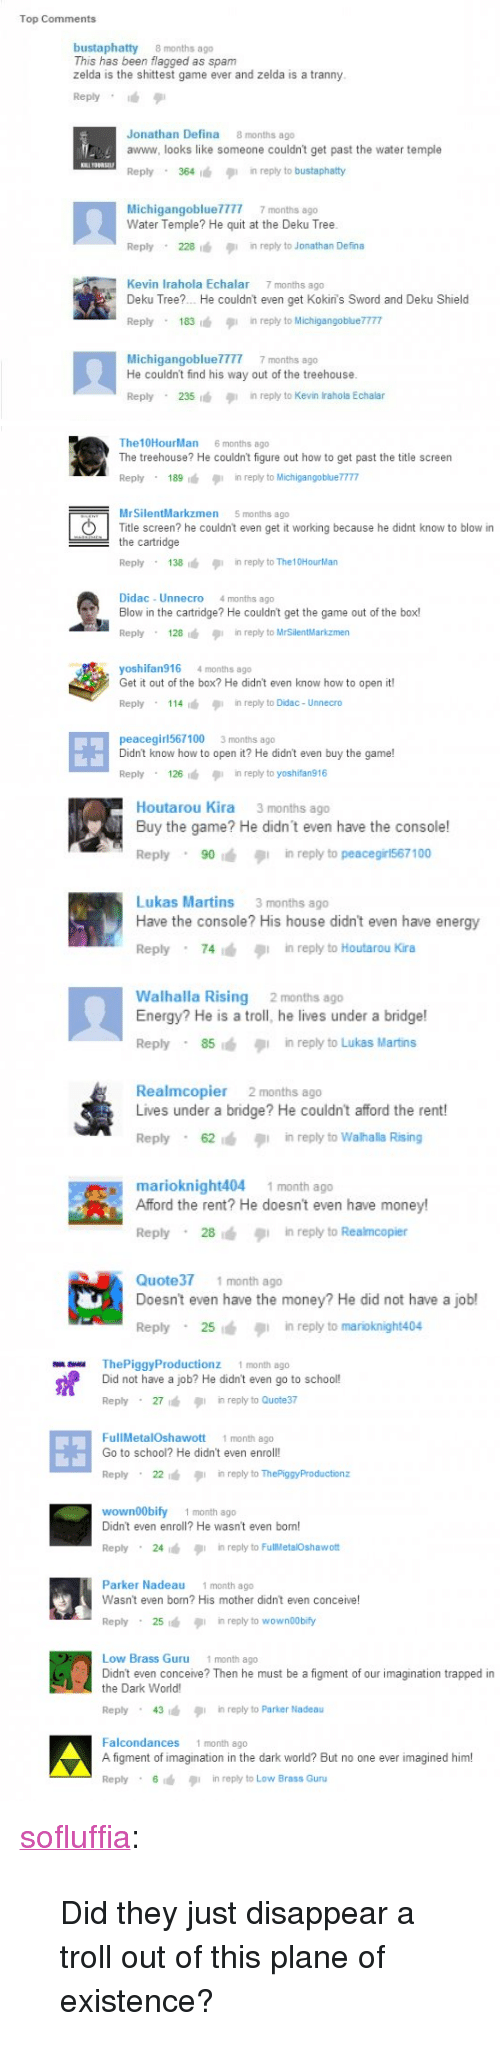 Anaconda, Energy, and Money: Top Comments  bustaphatty 8 months ago  This has been flagged as spam  zelda is the shittest game ever and zelda is a tranny  Reply .  Jonathan Defina 8 months ago  awww, looks like someone couldn't get past the water temple  Reply 364 in reply to bustaphaty  MichigangoblueTTT7 7 months ago  Water Temple? He quit at the Deku Tree  Reply 228  in reply to Jonathan Defina  Kevin Irahola Echalar 7 months ago  Deku Tree?.. He couldn't even get Kokin's Sword and Deku Shield  Reply 183in reply to MichigangoblueTT7  He couldn't find his way out of the treehouse  Reply 235 in reply to Kevin Irahola Echalar   The10HourMan 6 months ago  The treehouse? He couldn't figure out how to get past the title screen  Reply 189in reply to Michigangobluem  MrSilentMarkzmen  5 months ago  Title screen? he couldn't even get it working because he didnt know to blow in  the cartridge  Reply . 138  inreply toThe10Hourl lan  Didac - Unnecro 4 months ago  Blow in the cartridge? He couldn't get the game out of the box!  Reply 128 in reply to MrSilentMarkzmen  yoshifan916 4 months ago  Get it out of the box? He didn't even know how to open it!  Reply . 1 14 1 in reply to Didac-Unnecro  田  peacegirl567100 3 months ago  Didn't know how to open it? He didn't even buy the game!  Reply 126  in reply to yoshifan916   Houtarou Kira 3 months ago  Buy the game? He didn't even have the console!  Reply . 90 , in reply to peacegris67 100  Lukas Martins 3 months ago  Have the console? His house didn't even have energy  Reply . 74浀タ1 in reply to Houtarou Kira  Walhalla Rising 2 months ago  Energy? He is a troll, he lives under a bridge!  Reply 85in reply to Lukas Martins  Realmcopier 2 months ago  Lives under a bridge? He couldn't afford the rent!  Reply 62 in reply to Walhalla Rising  marioknight404  1 month ago  Afford the rent? He doesn't even have money!  Reply 28in reply to Realmcopier  Quote371 month ago  Doesn't even have the money? He did not have a jobl  Reply 25in reply to